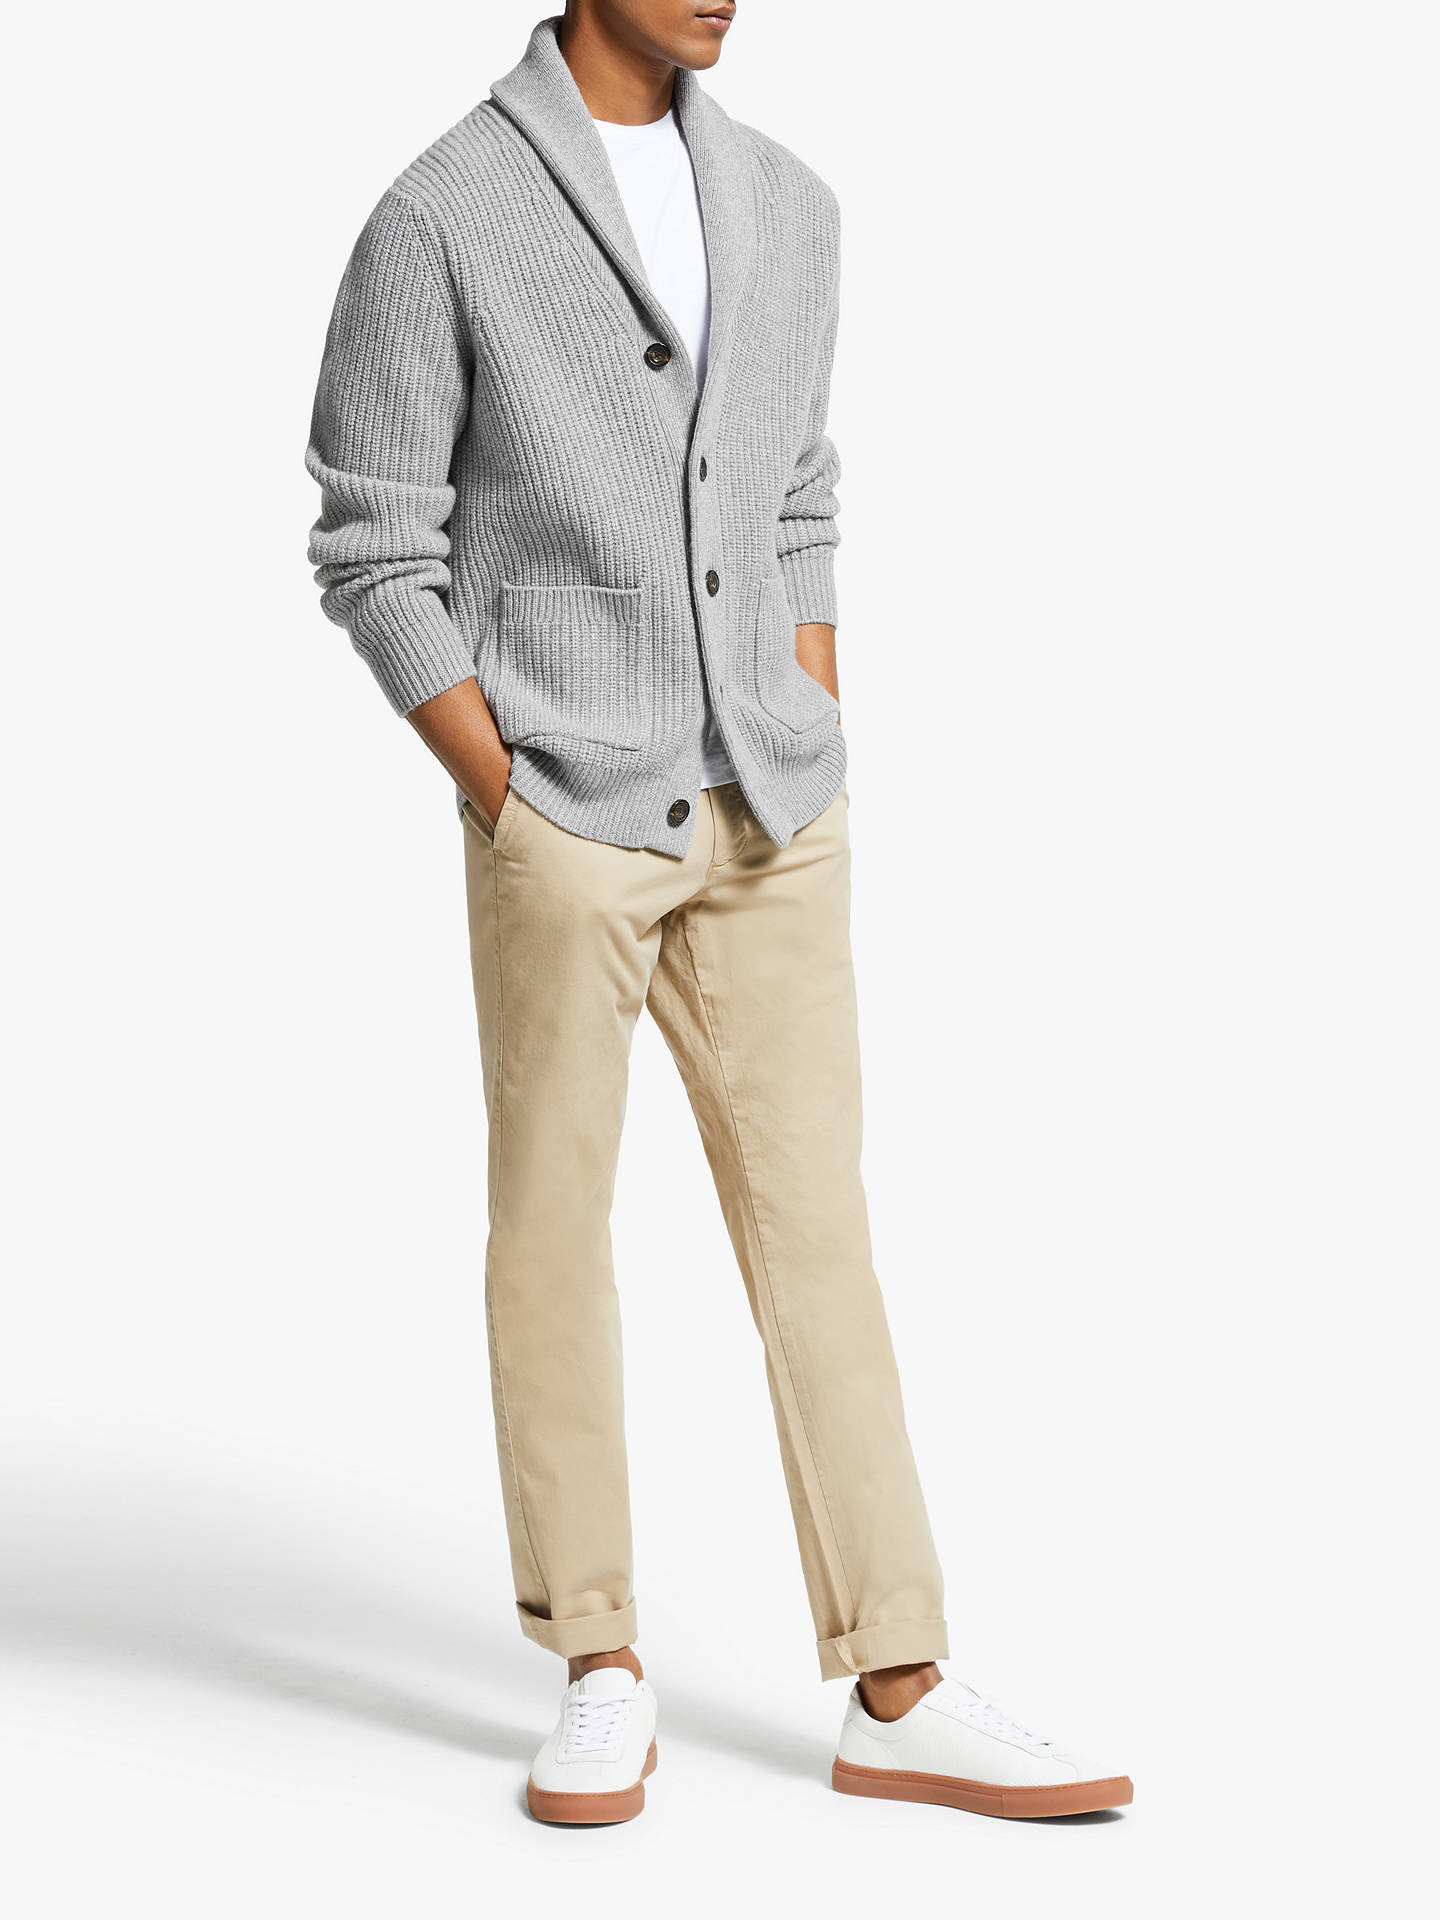 John Lewis & Partners Wool Cashmere Shawl Collar Cardigan at